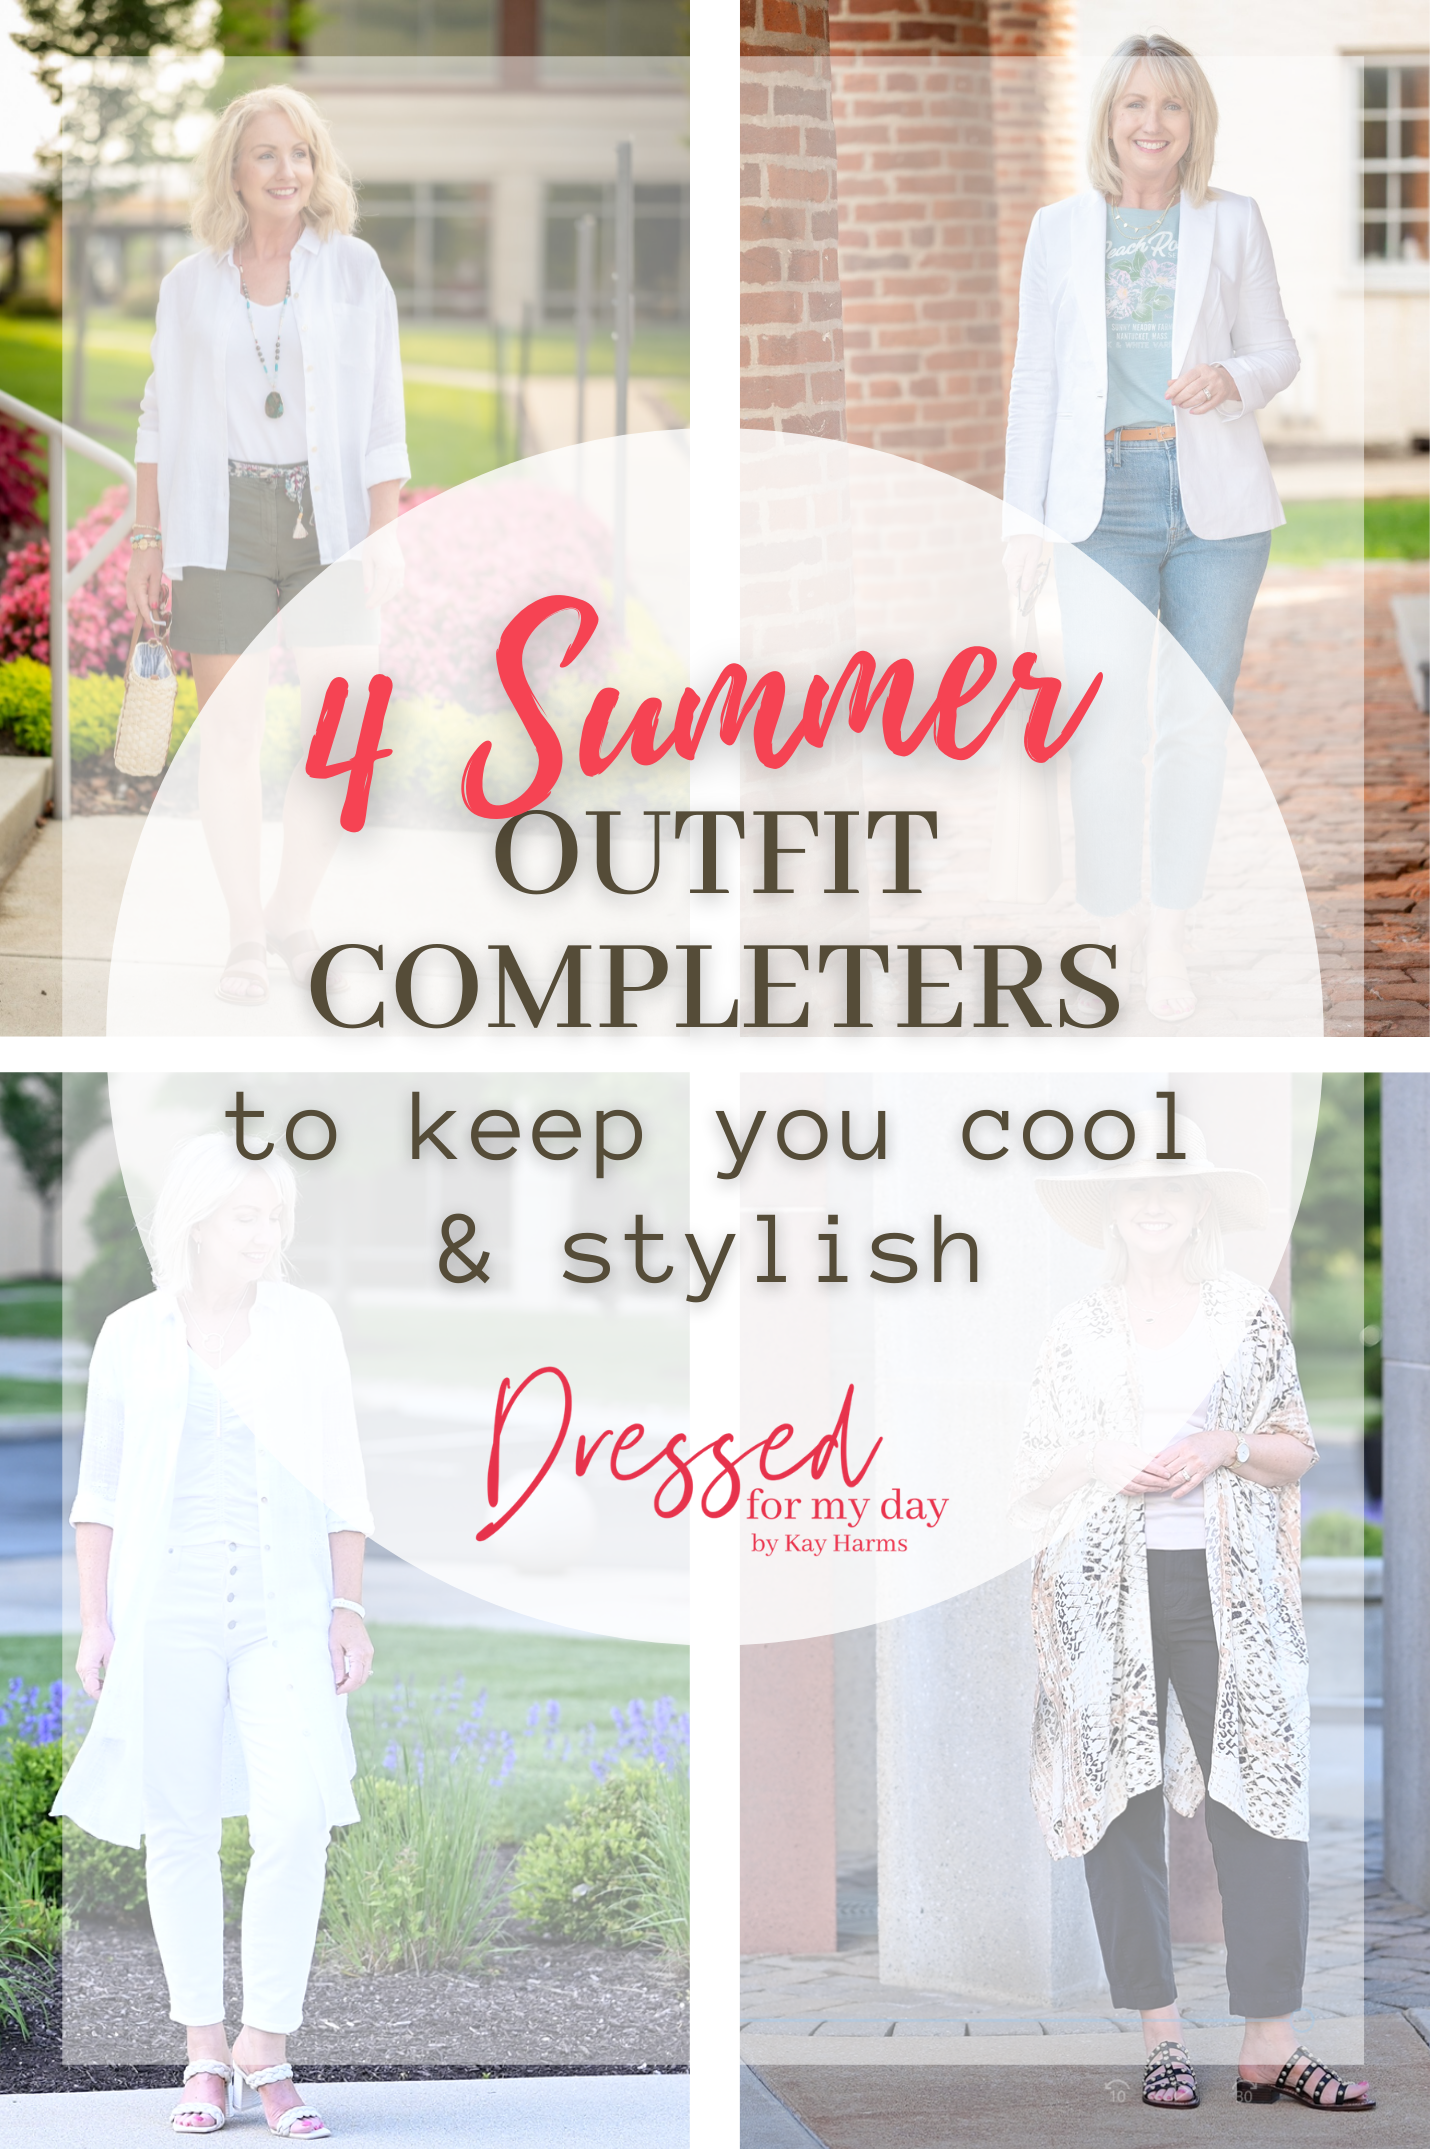 Summer Outfit Completers